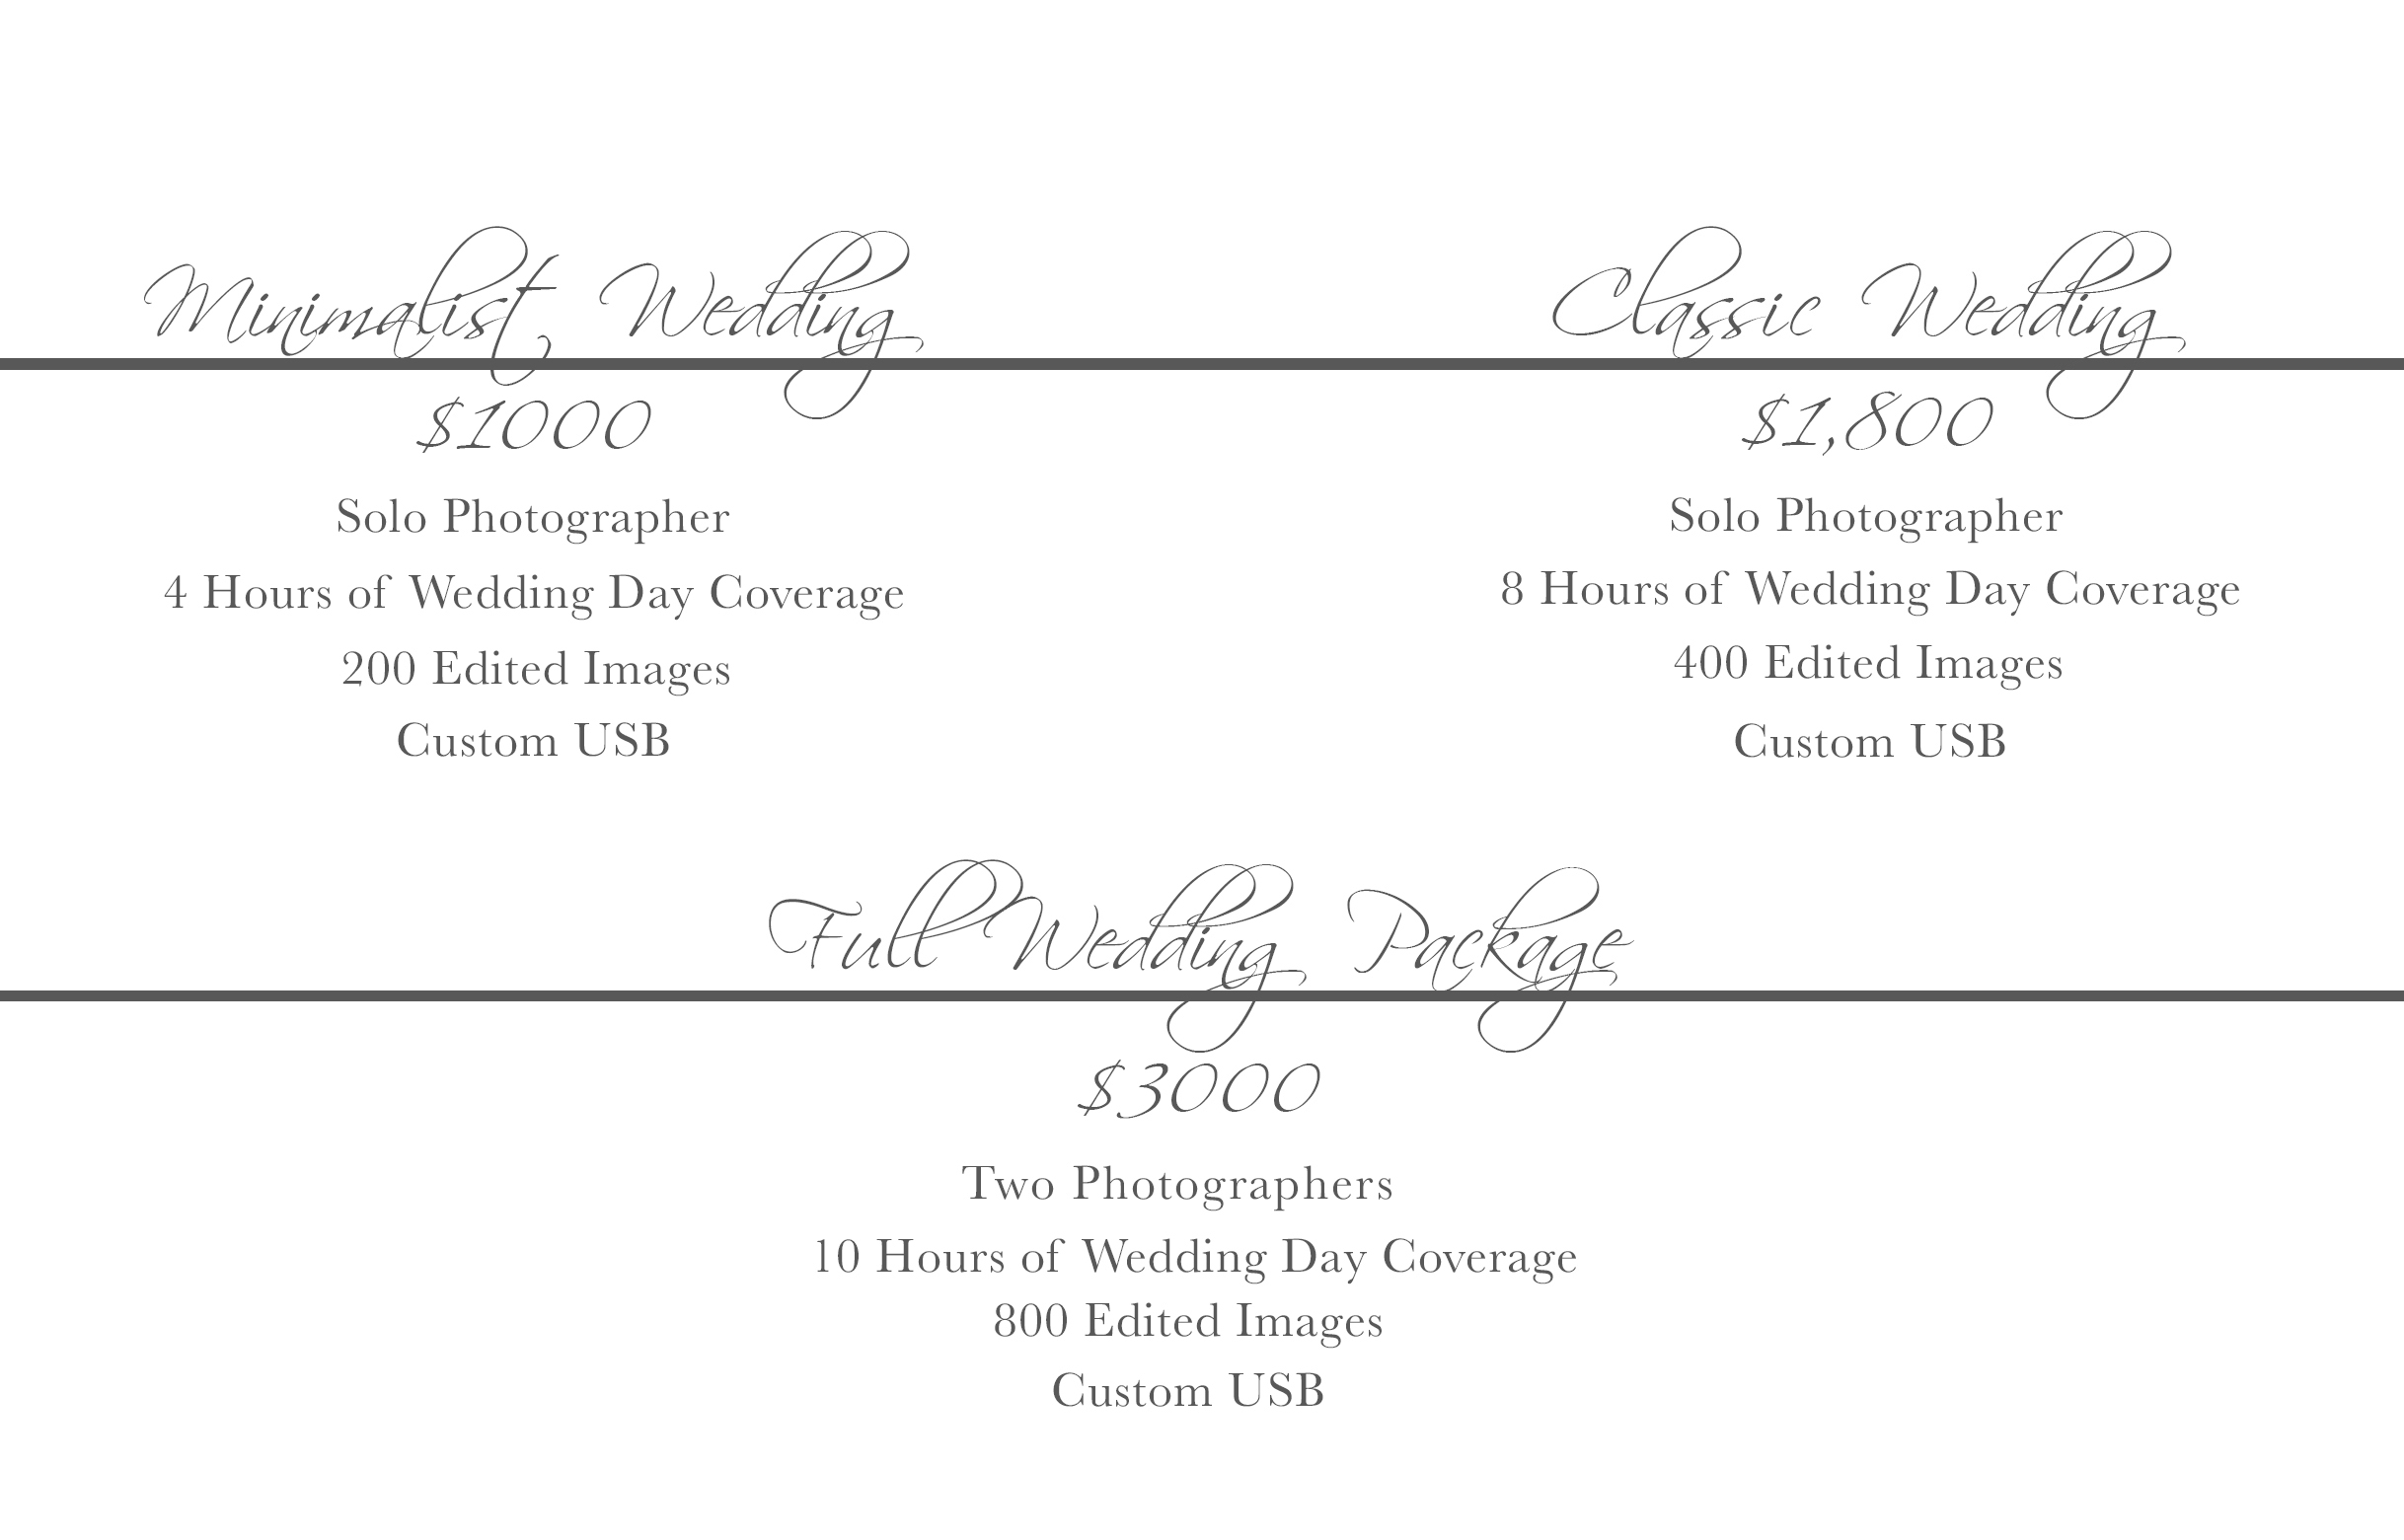 Wedding Package Information